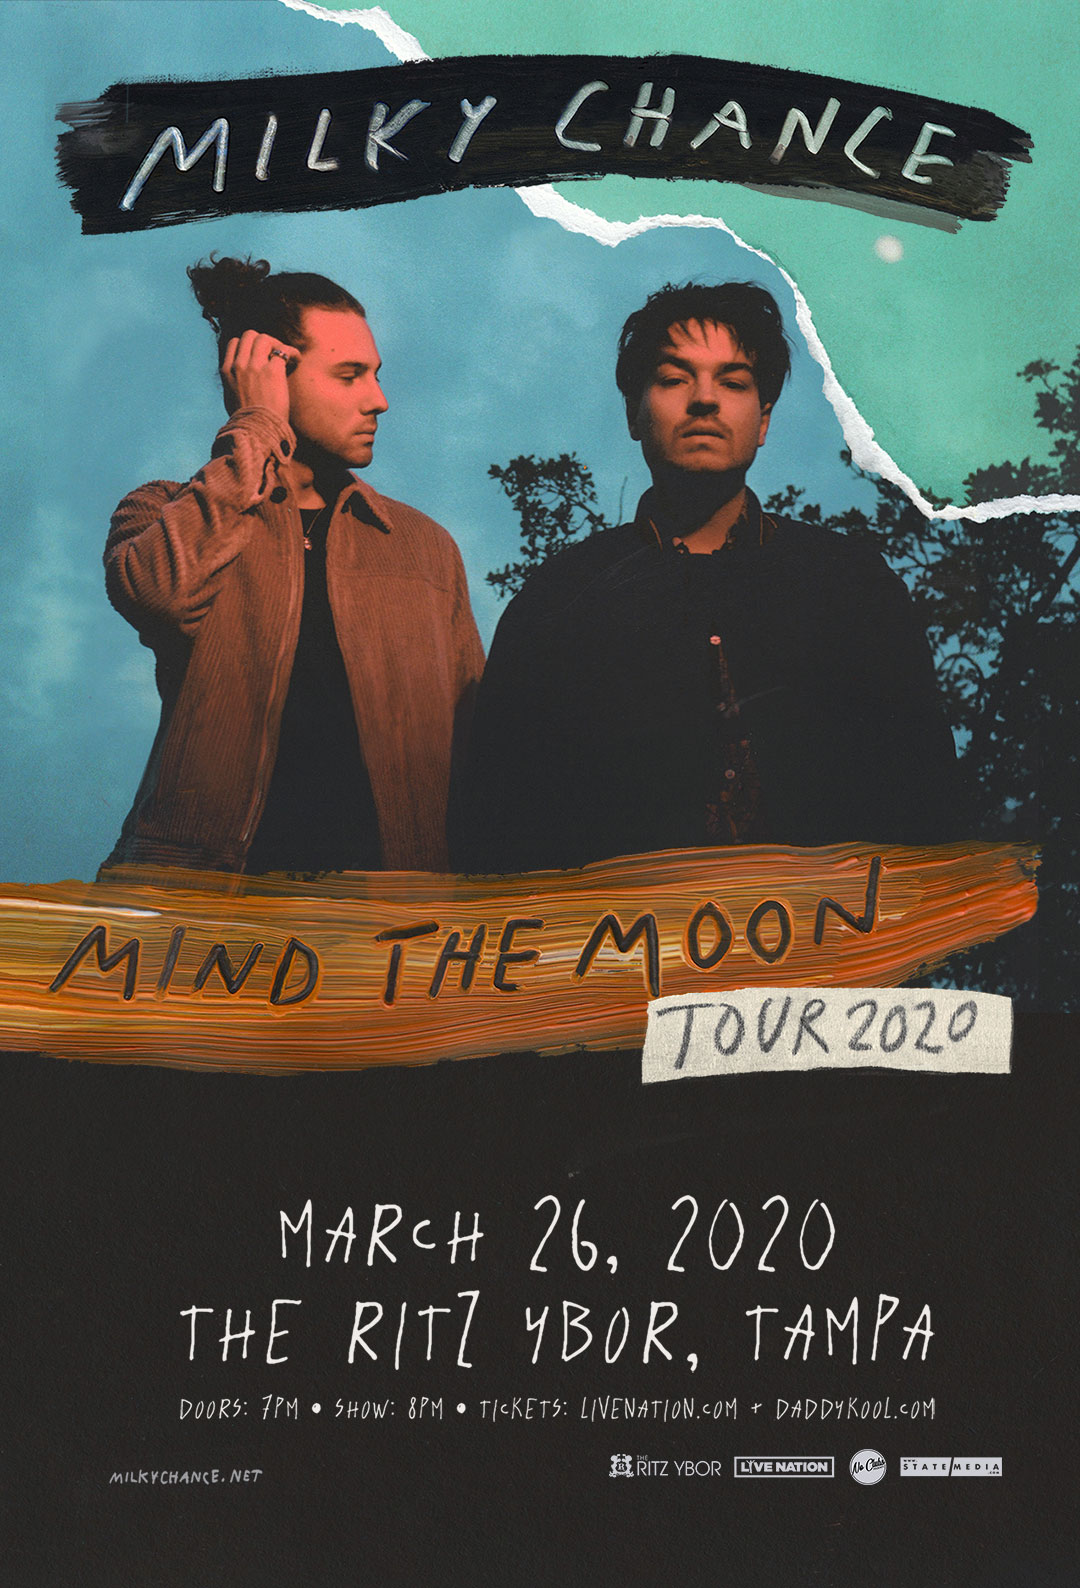 Milky Chance – Mind The Moon Tour 2020 at The RITZ Ybor – 3/26/2020